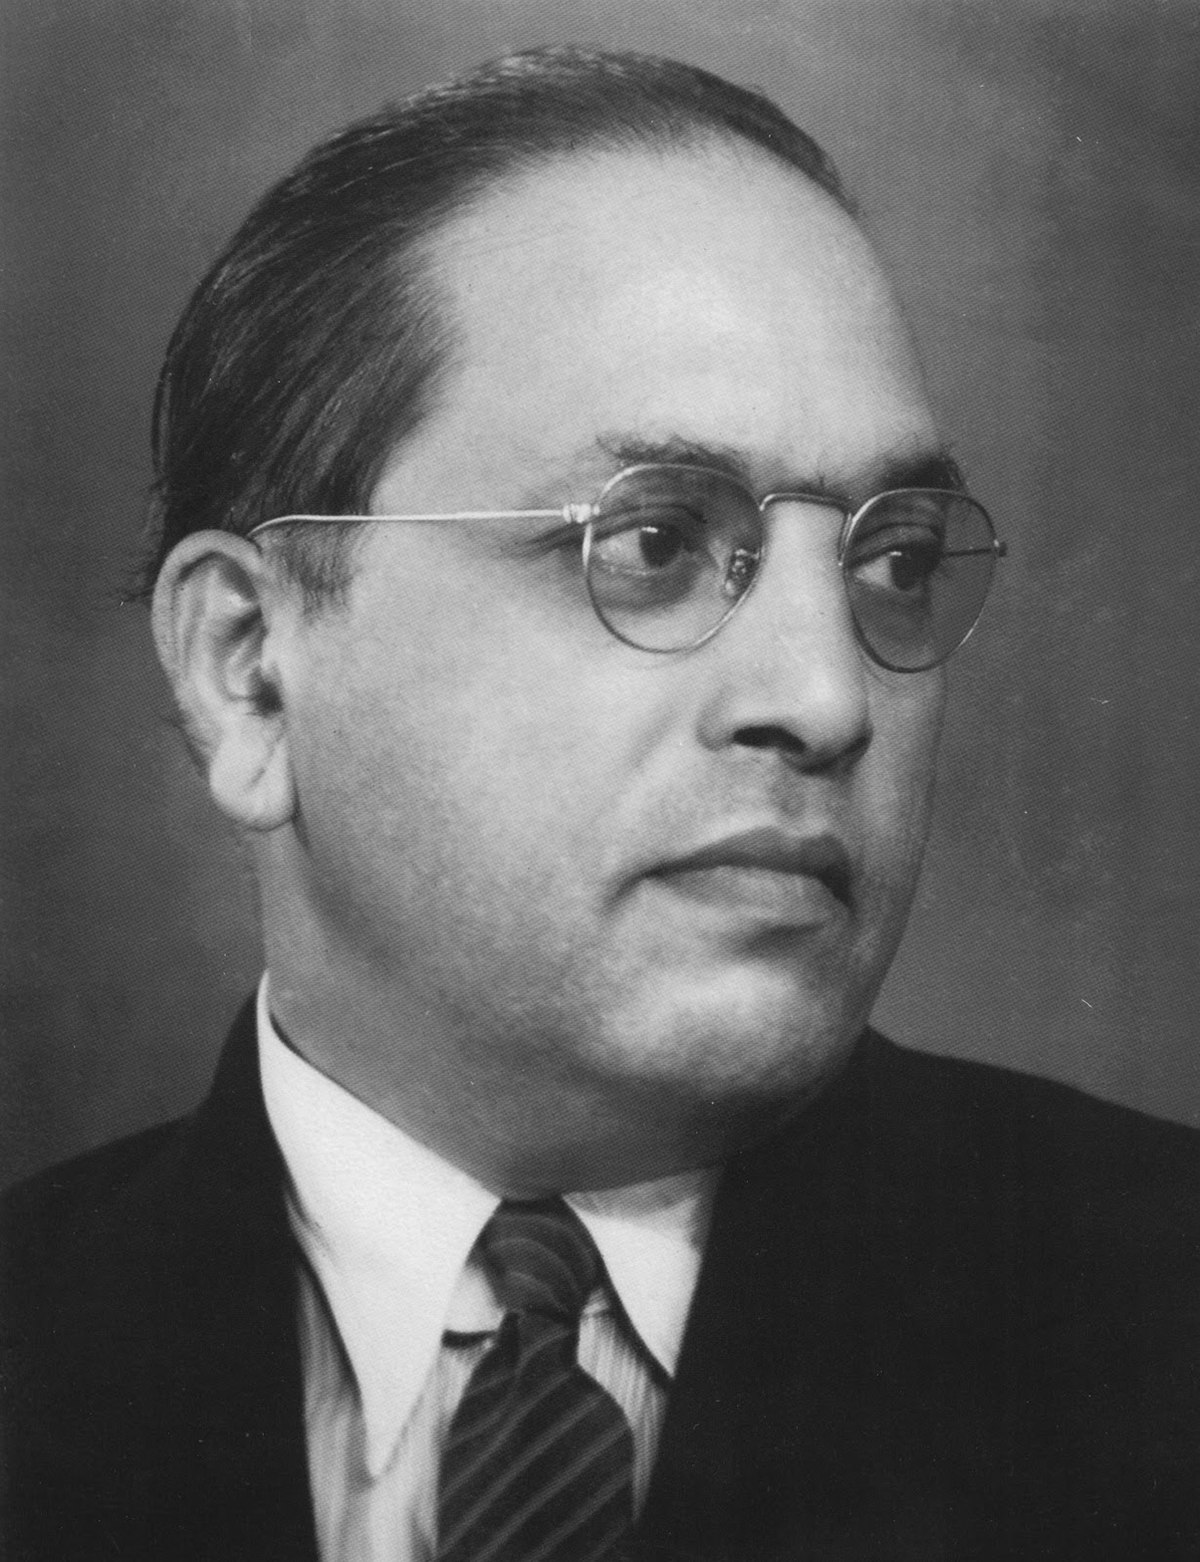 Dr. Bhimrao Ambedkar, Father of Dalit Movement